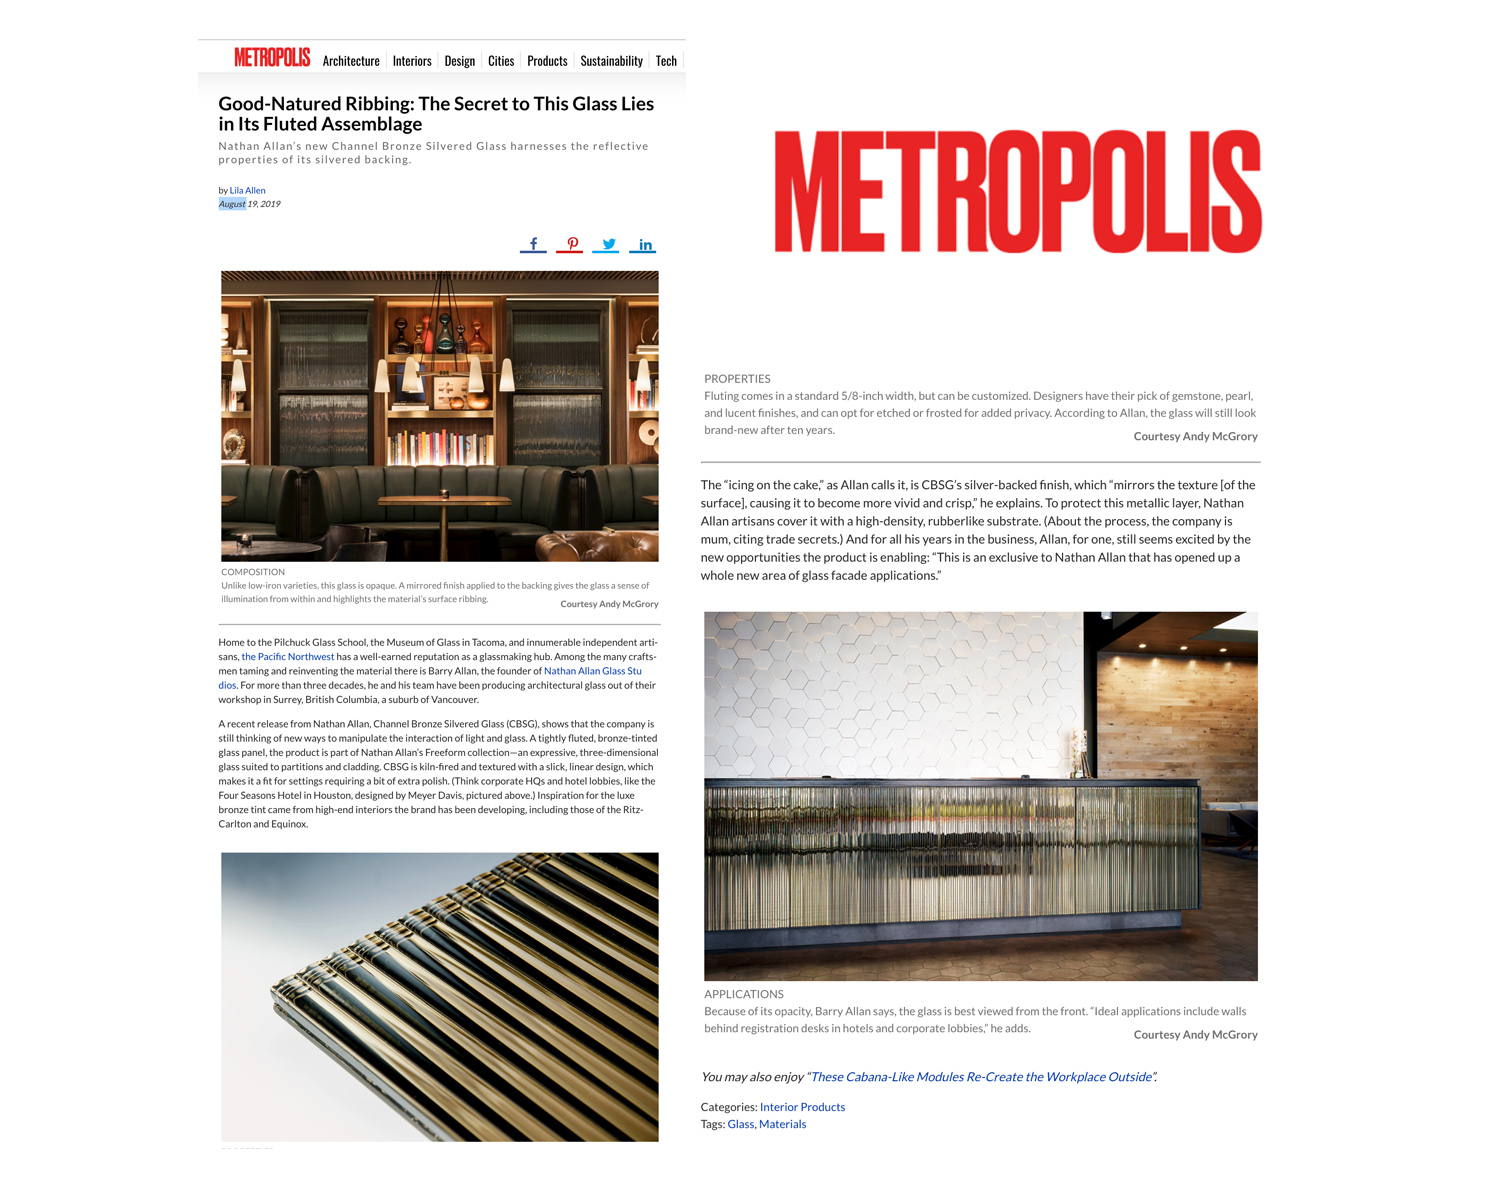 Metropolis | Channel Bronze Silvered Glas